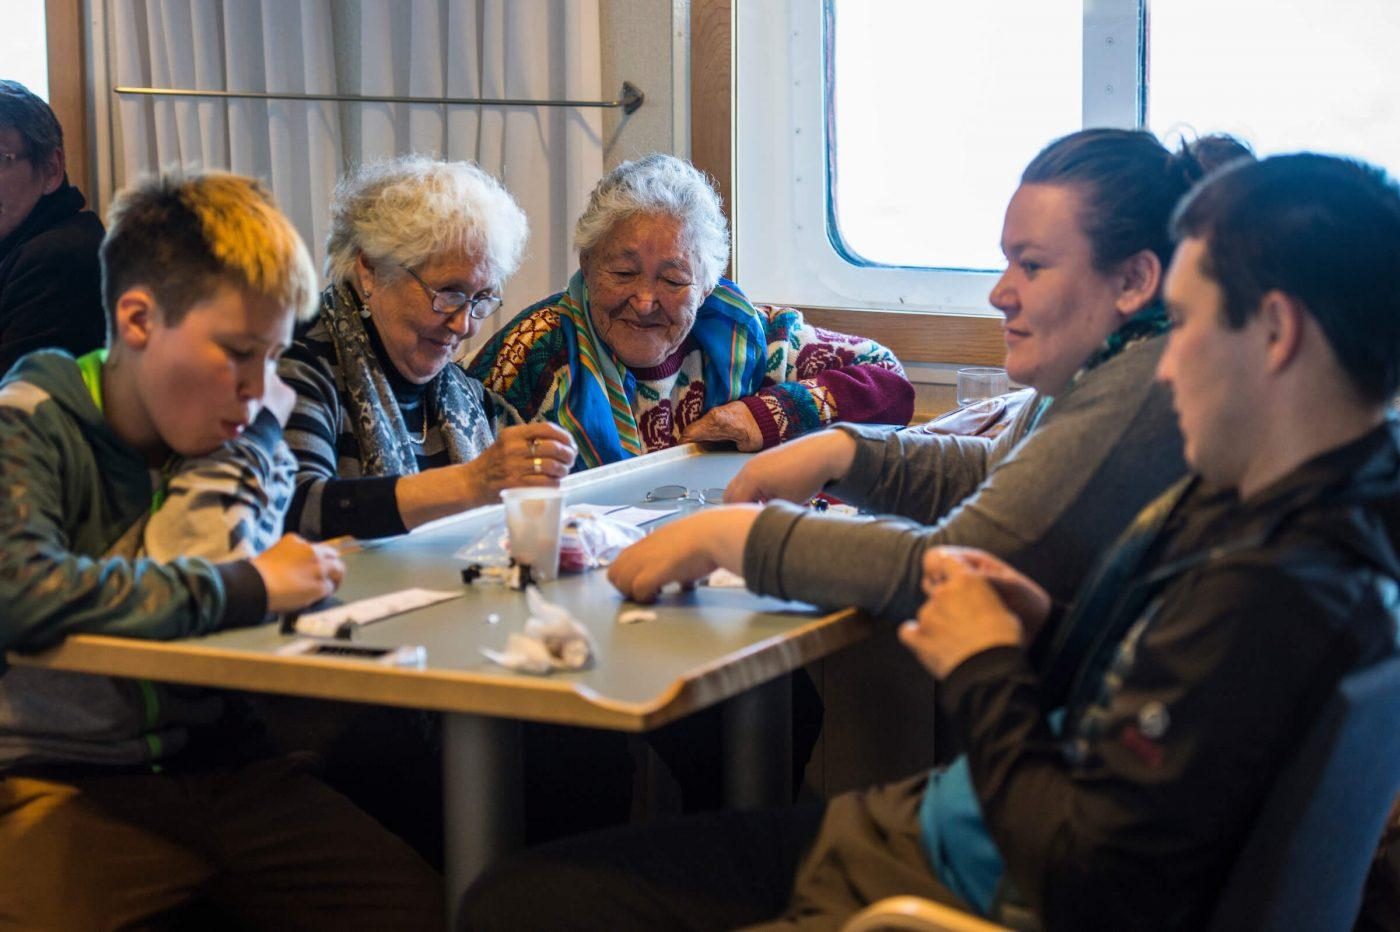 Passengers sharing the table in Cafe Sarfaq in the coastal ferry Sarfaq Ittuk in Greenland. Photo by Mads Pihl